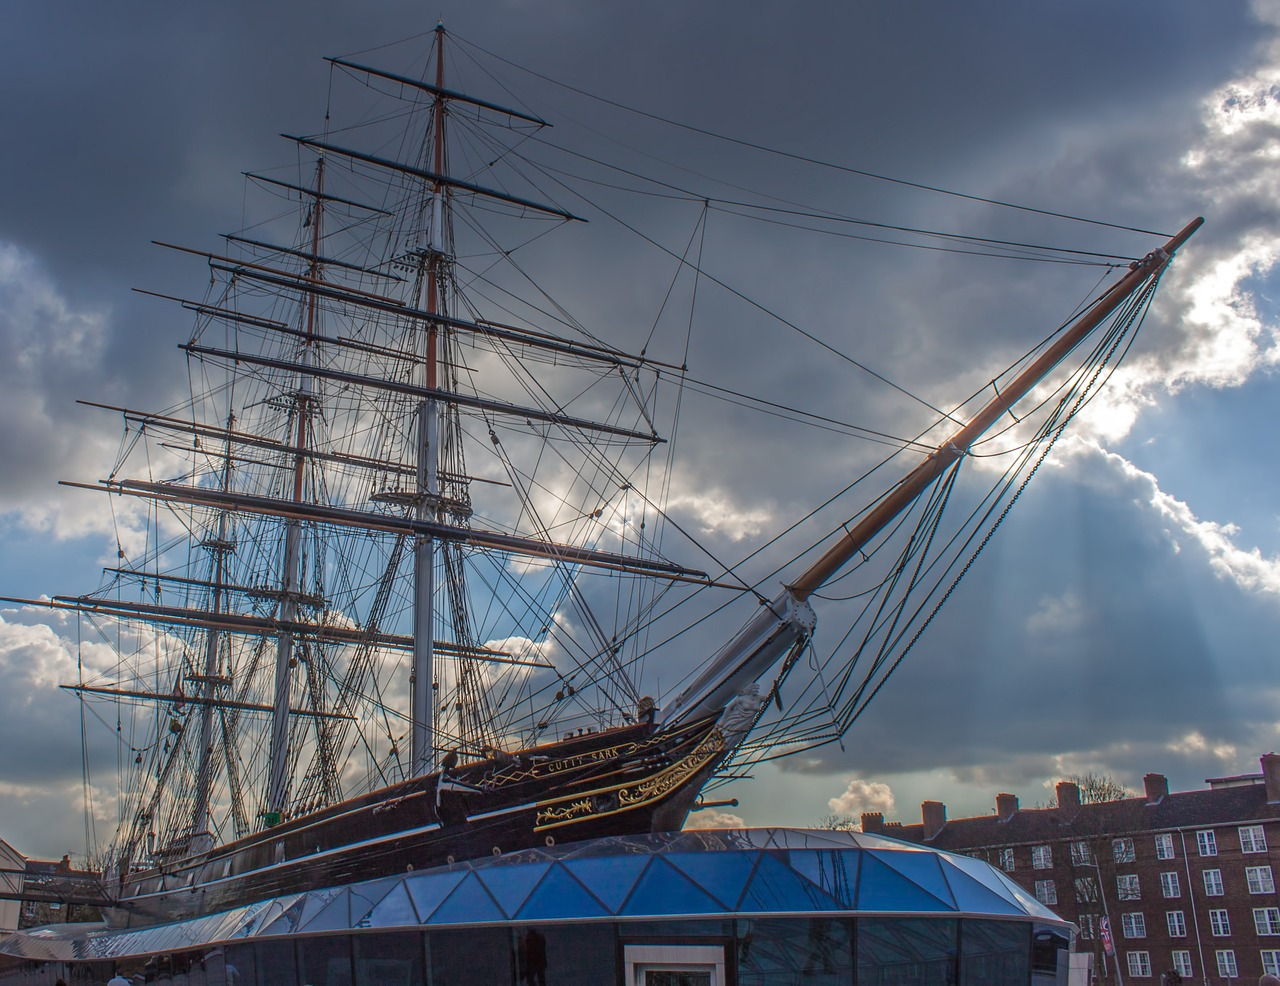 The Cutty Sark London